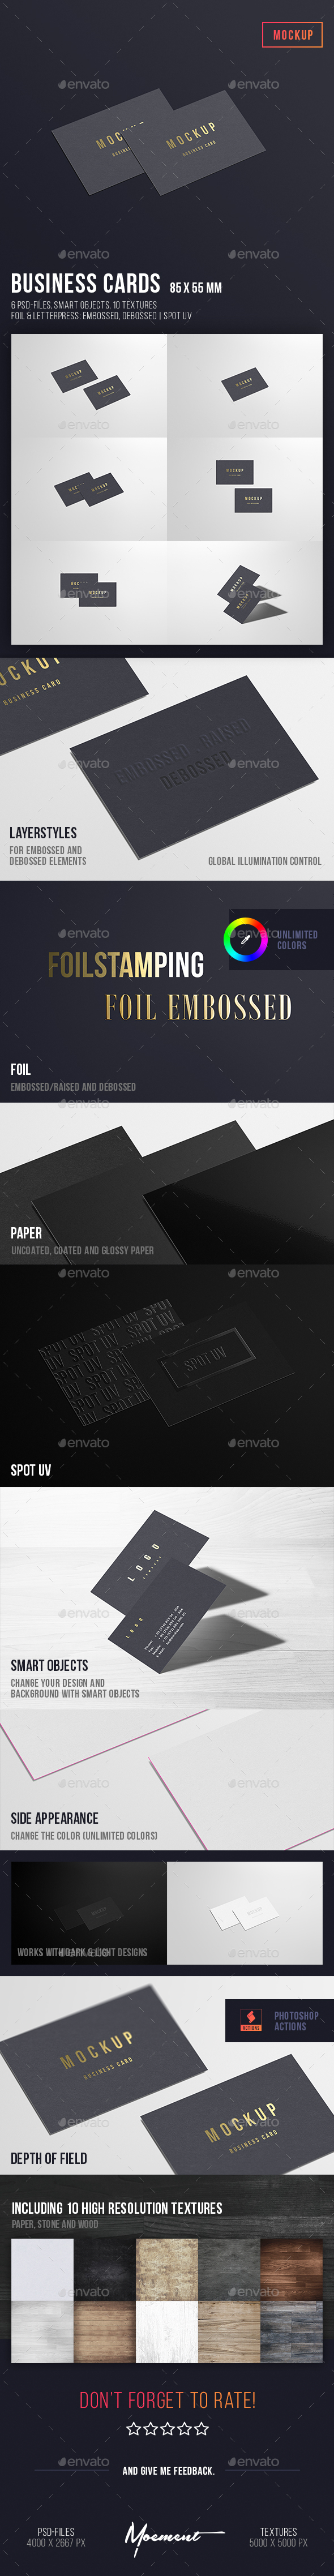 Business Cards Mockup 85x55 - Business Cards Print